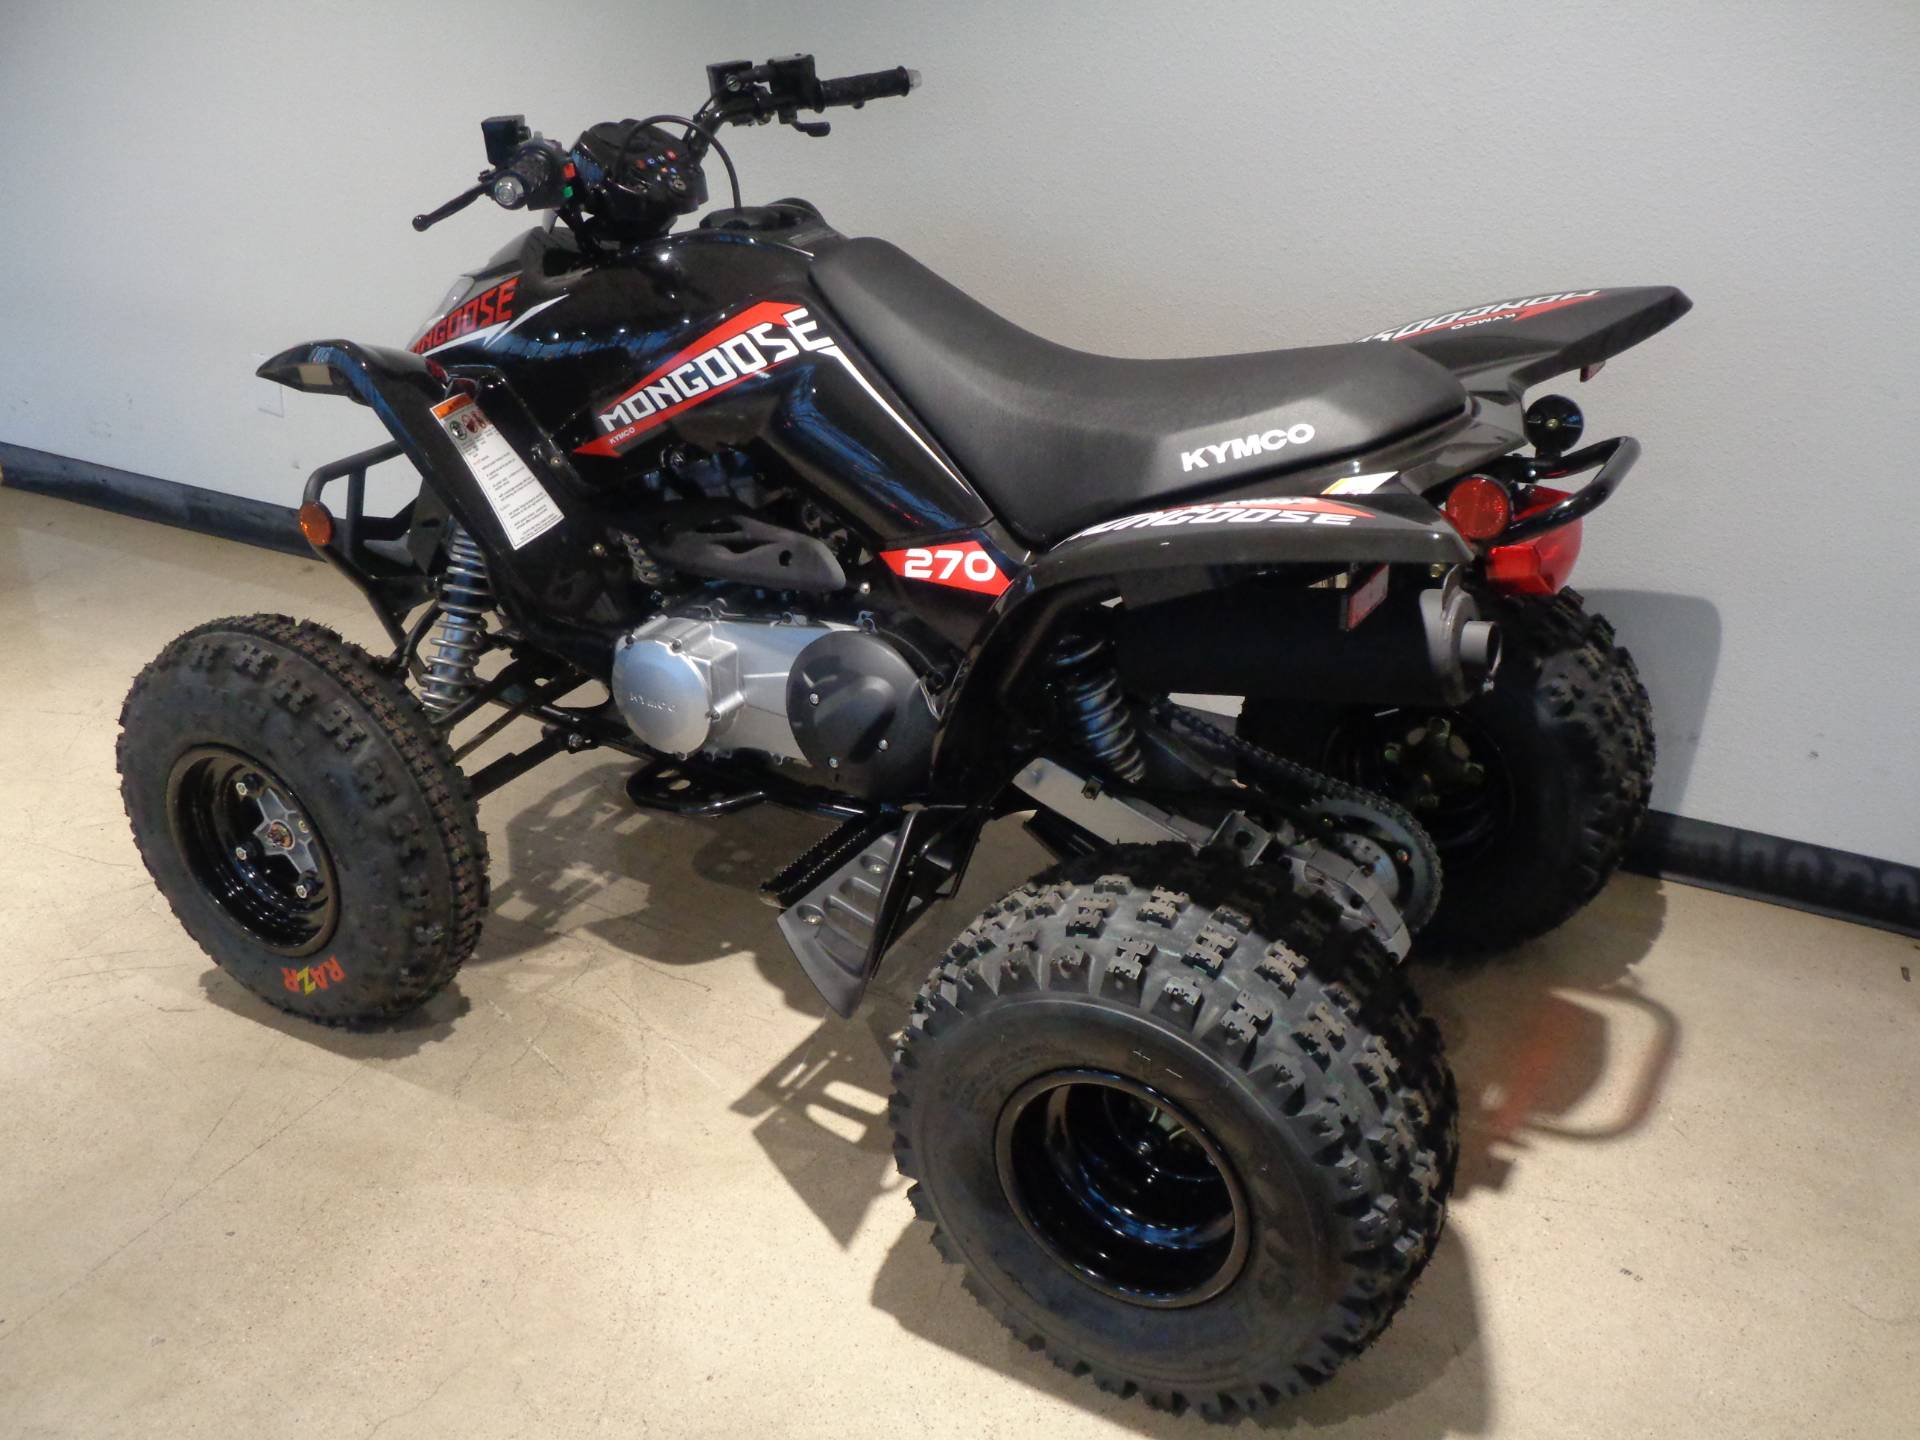 2020 Kymco Mongoose 270 in Chula Vista, California - Photo 16